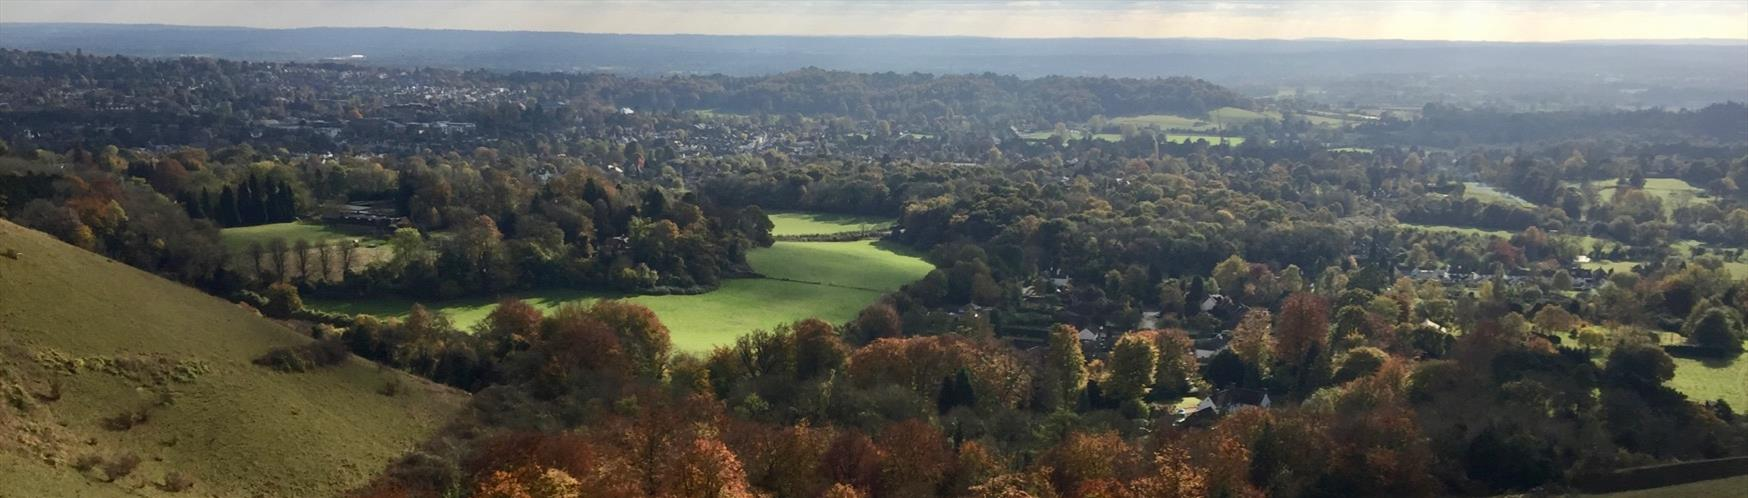 Be inspired by the view from Reigate Hill